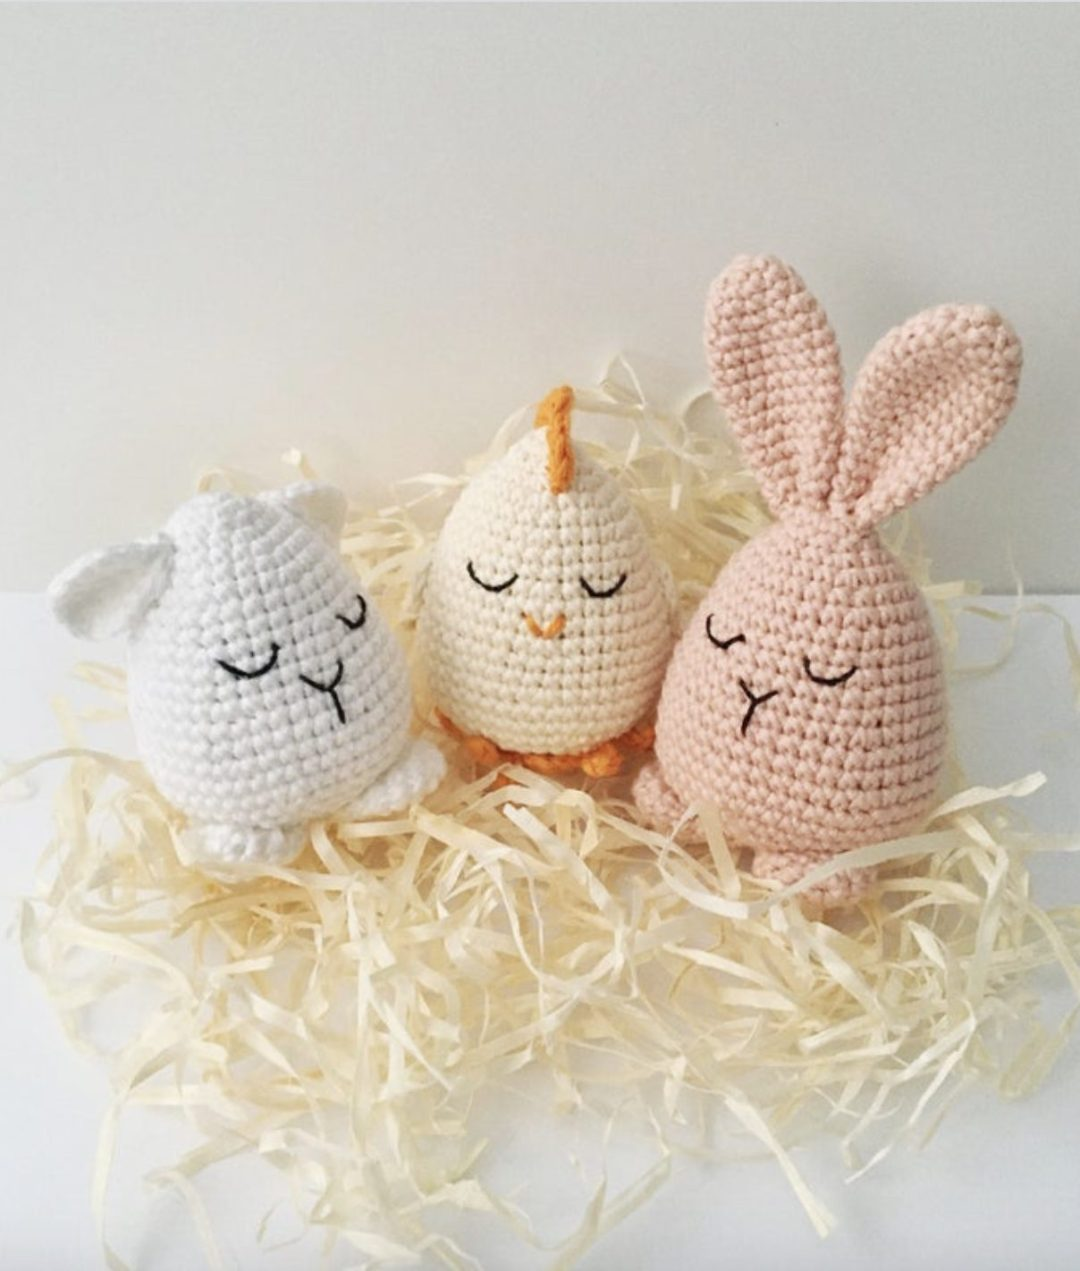 Cute Easter egg decorating ideas